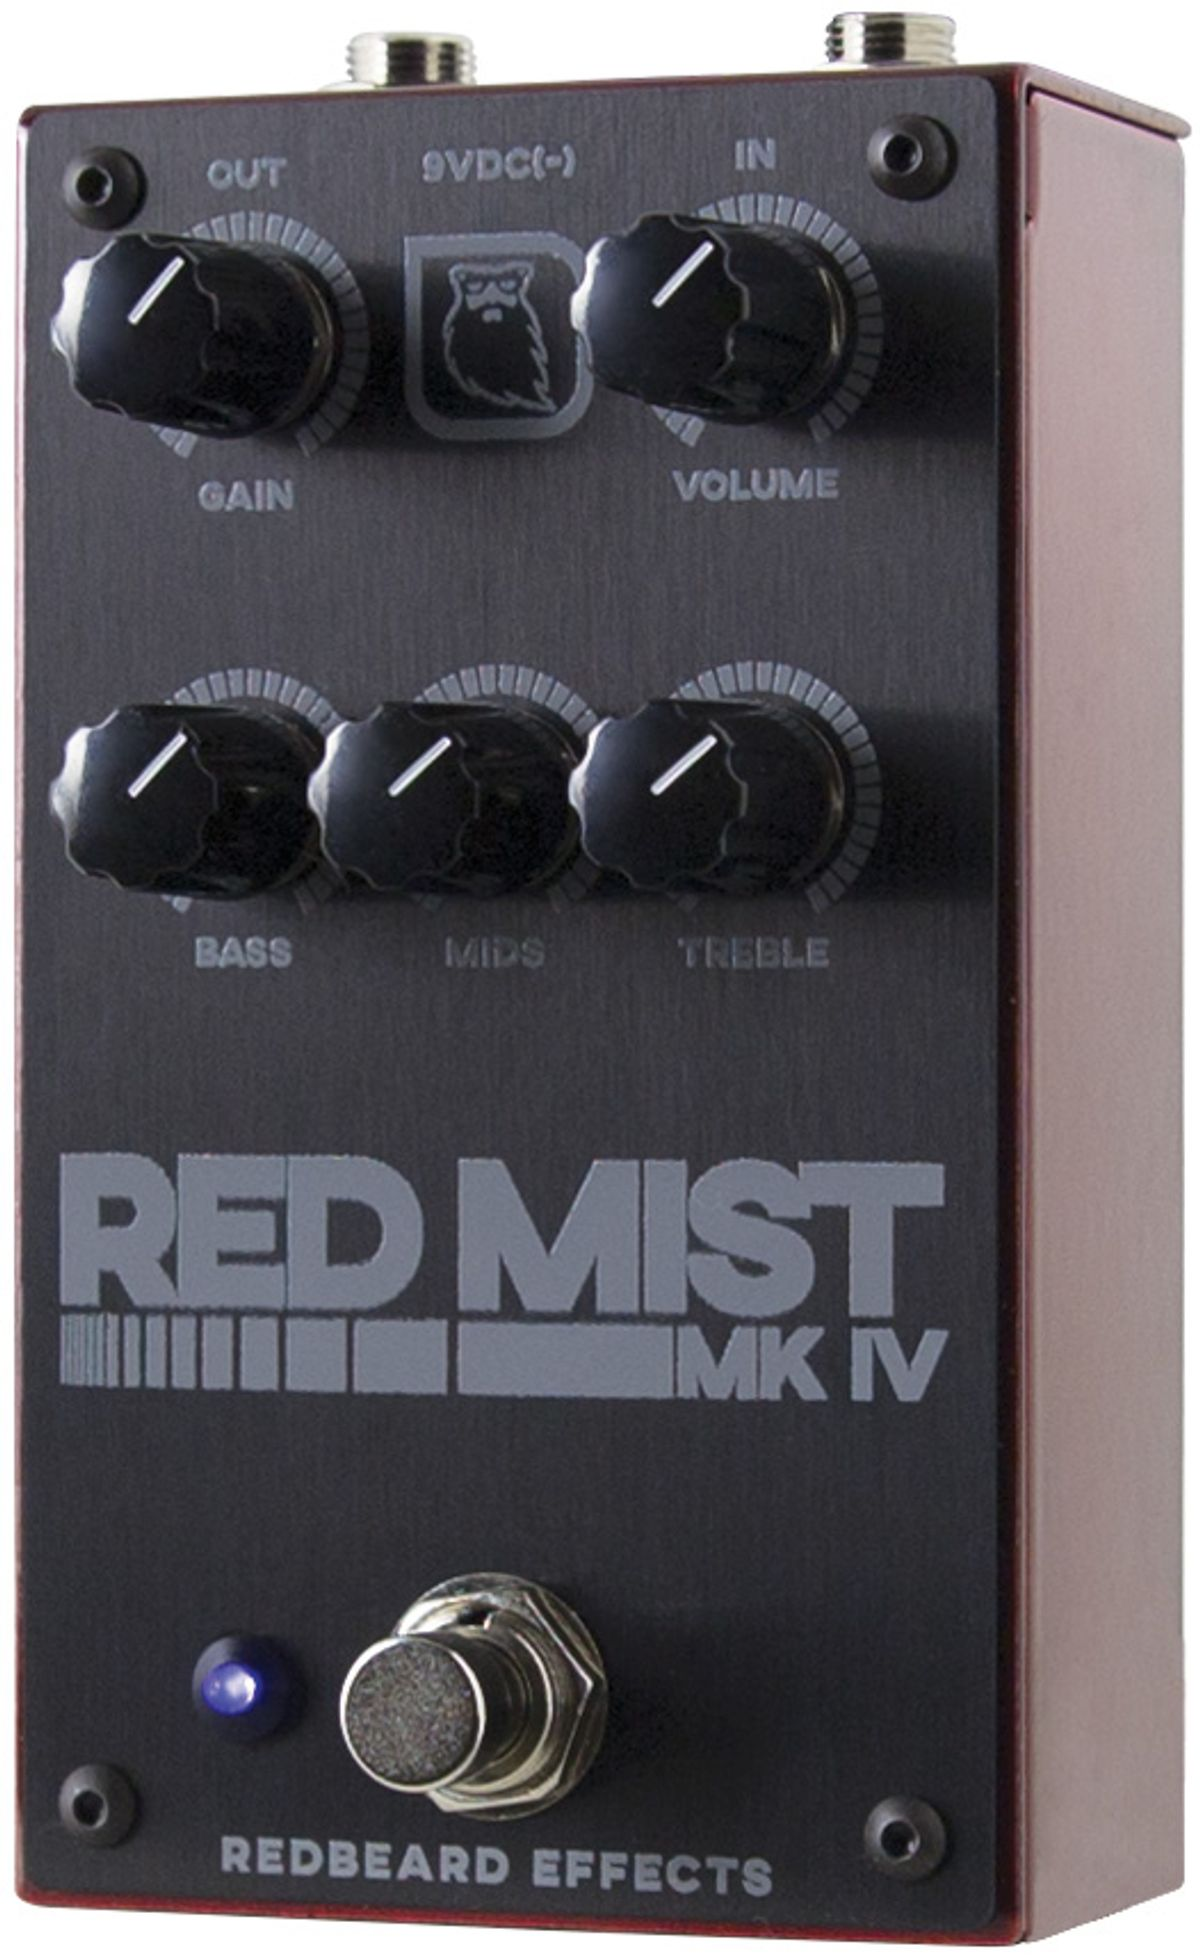 Looking for Skindred Guitar Tones in a Box? This Pedal Might Be for You